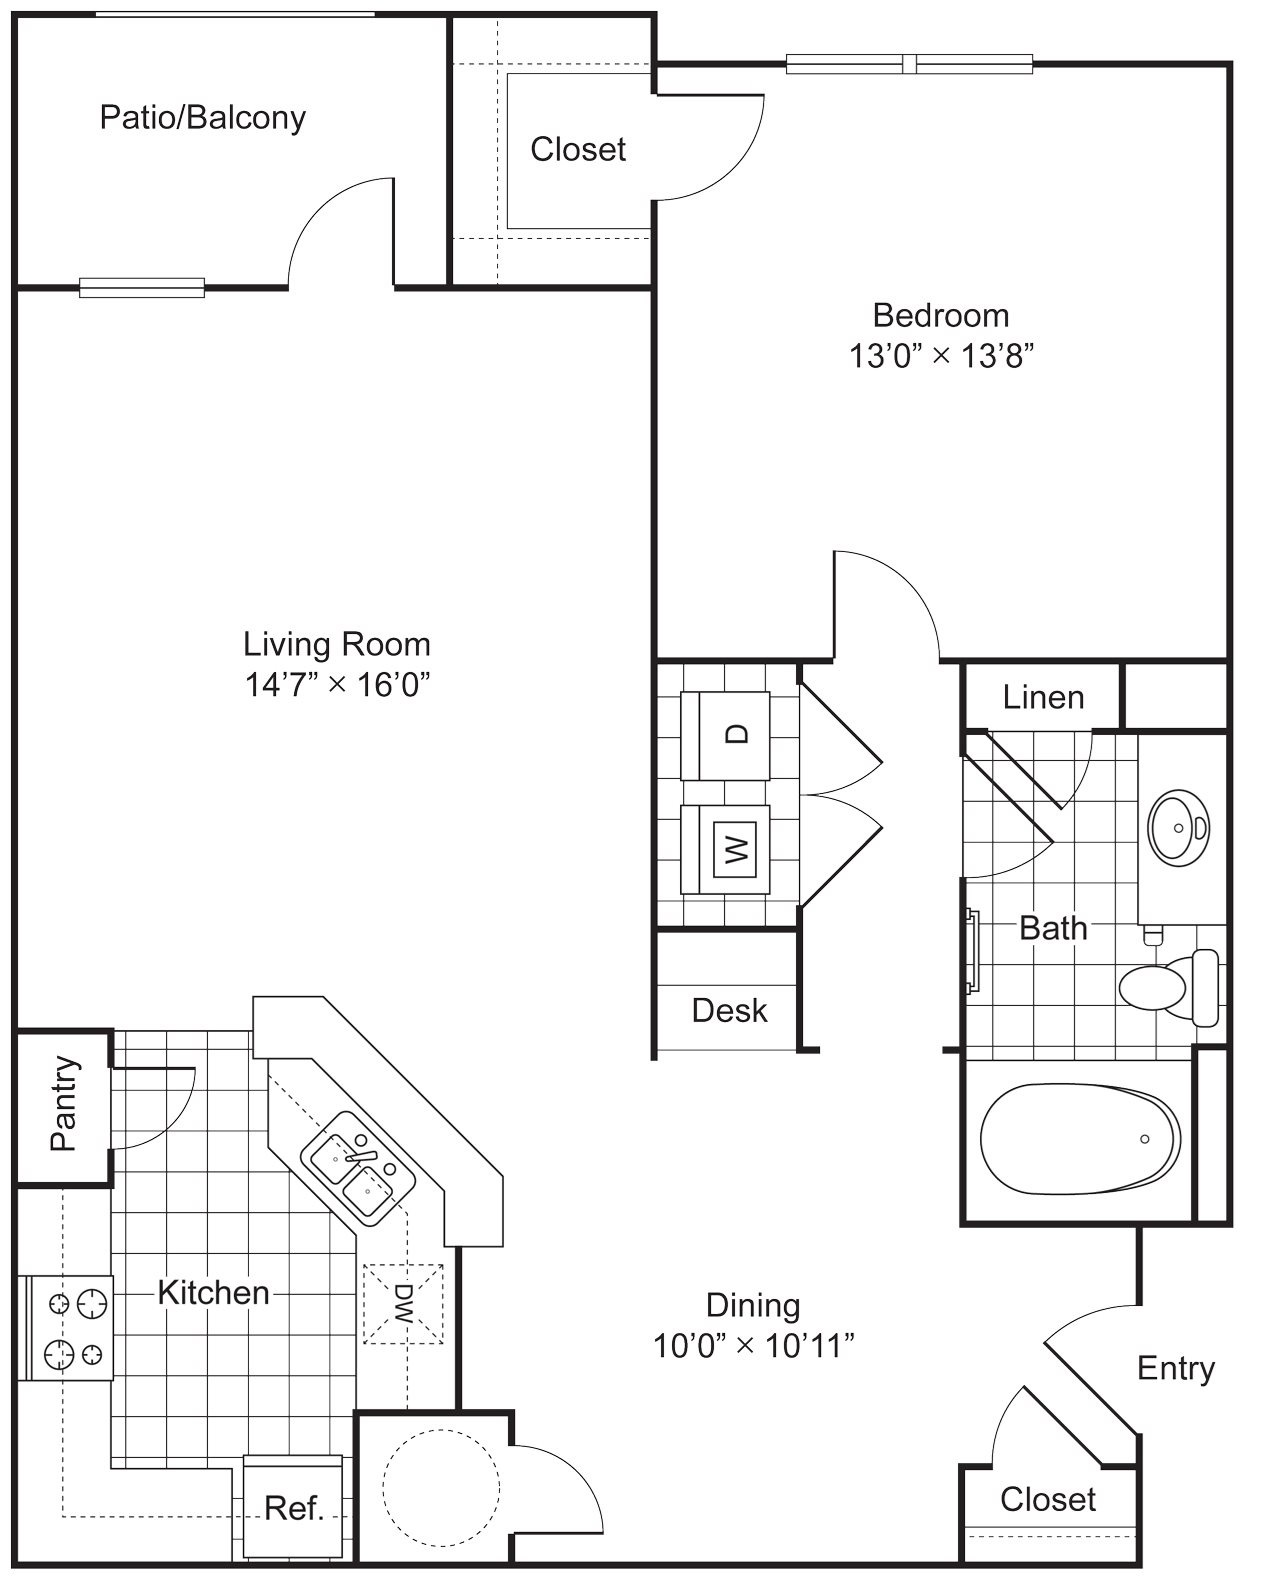 1 Bedroom 1 Bath 905 sqft (A1) Floor Plan 1